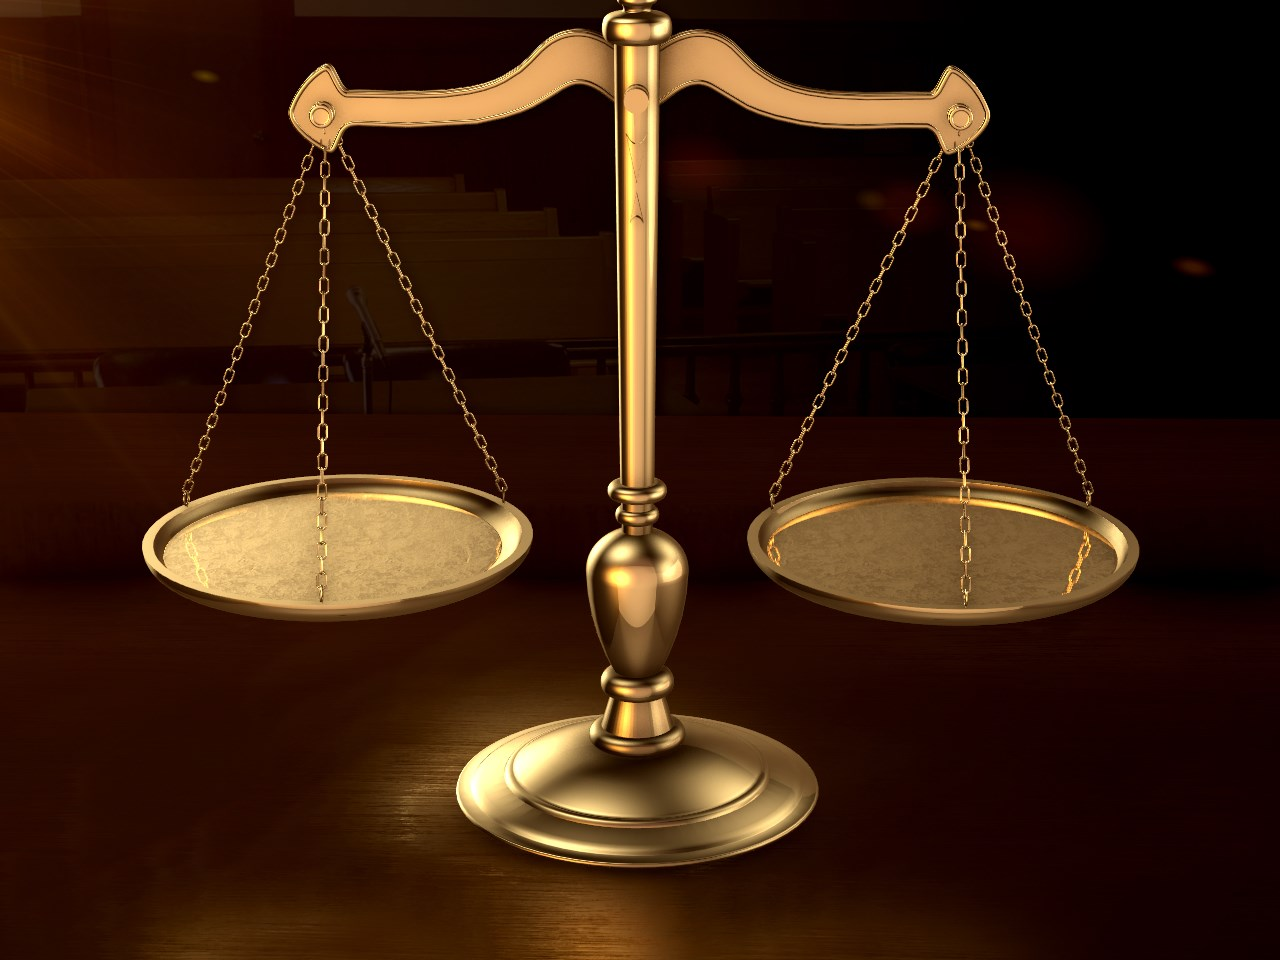 justice-scales-court_1533700741215.jpg